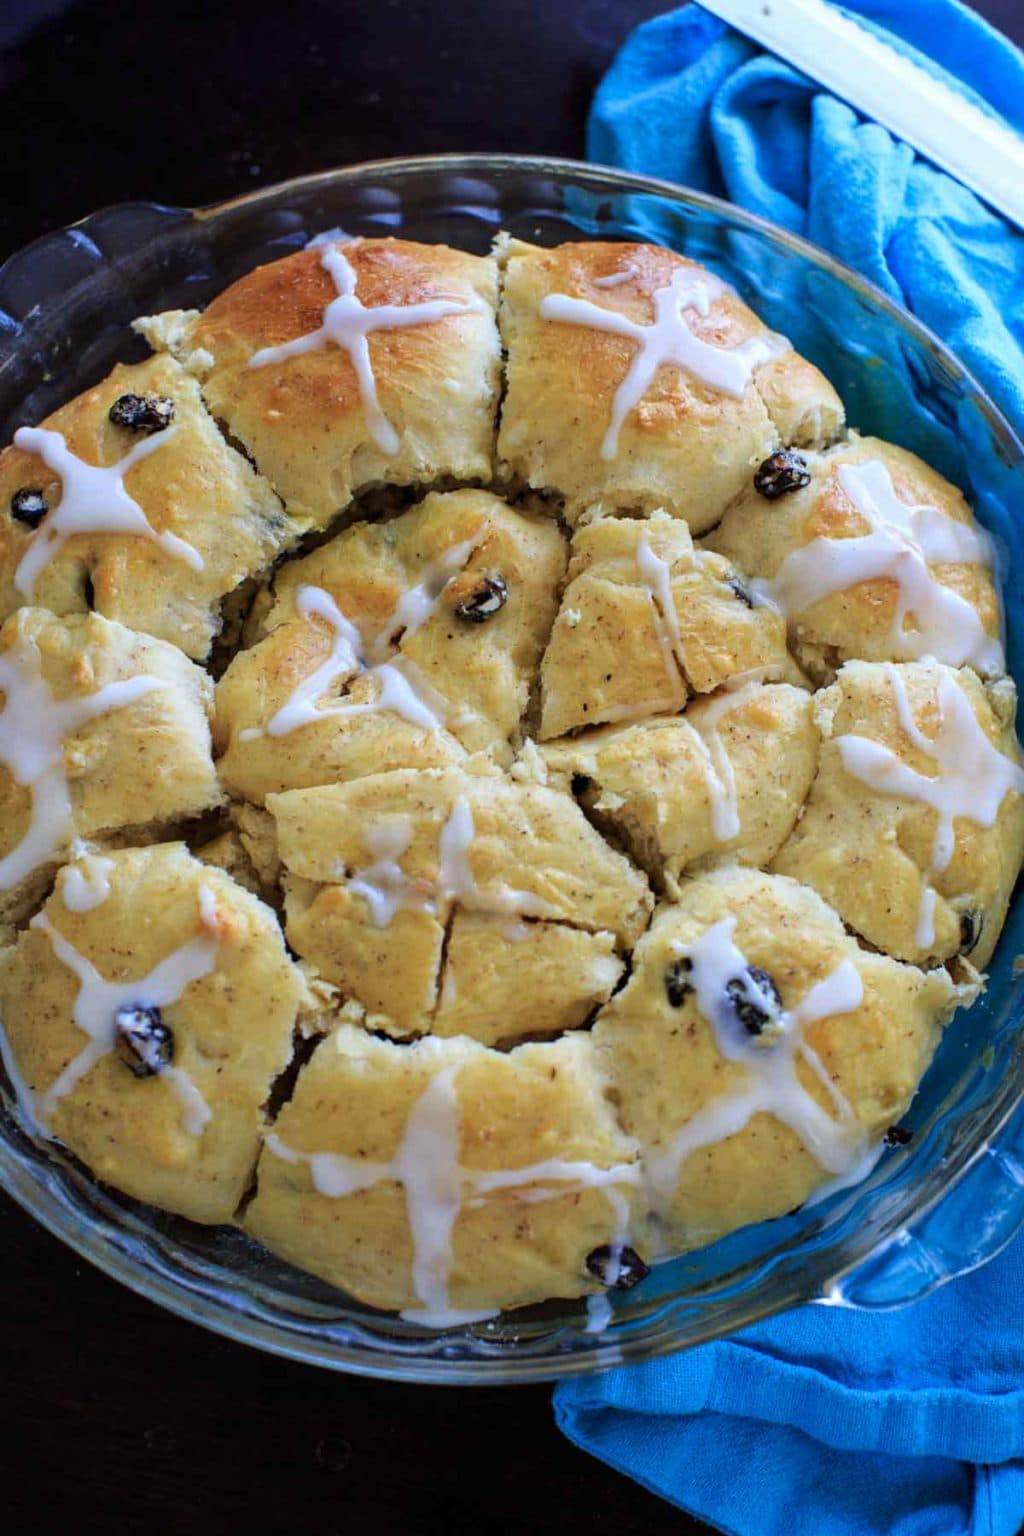 Hot Cross Buns with added dark chocolate pieces, dried cherries, and/or raisins.